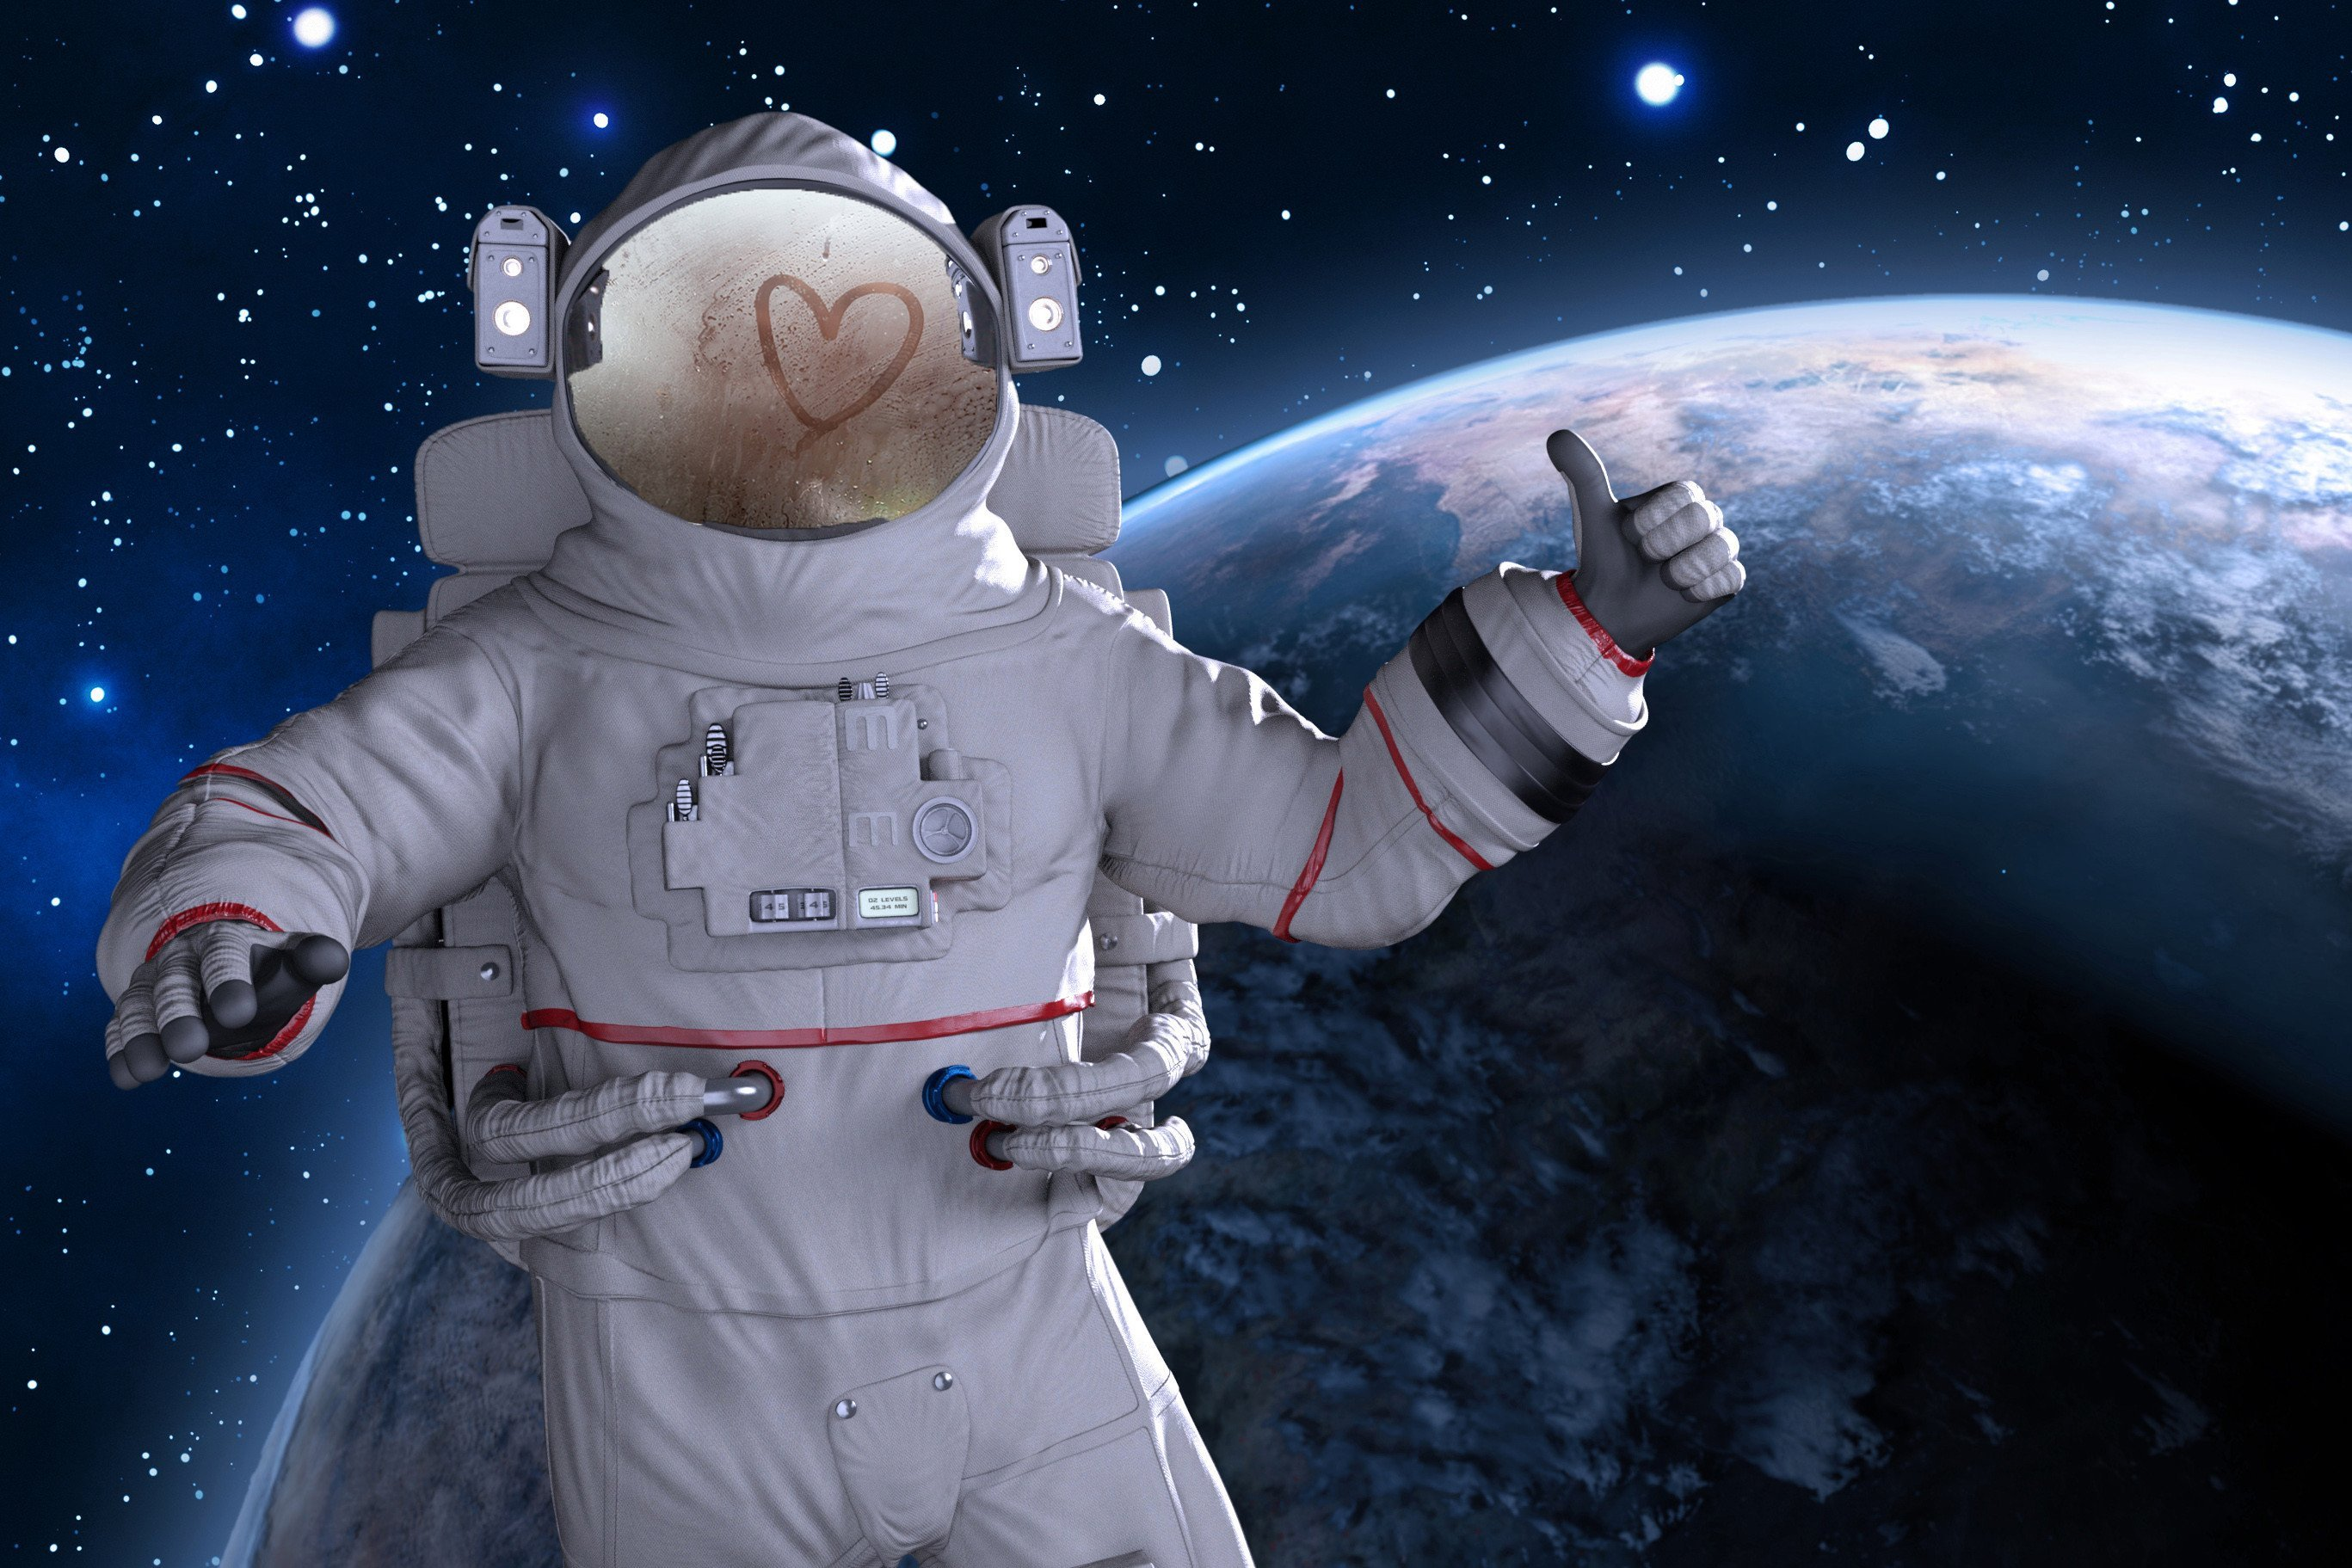 Sex in space would be a nightmare, scientist says